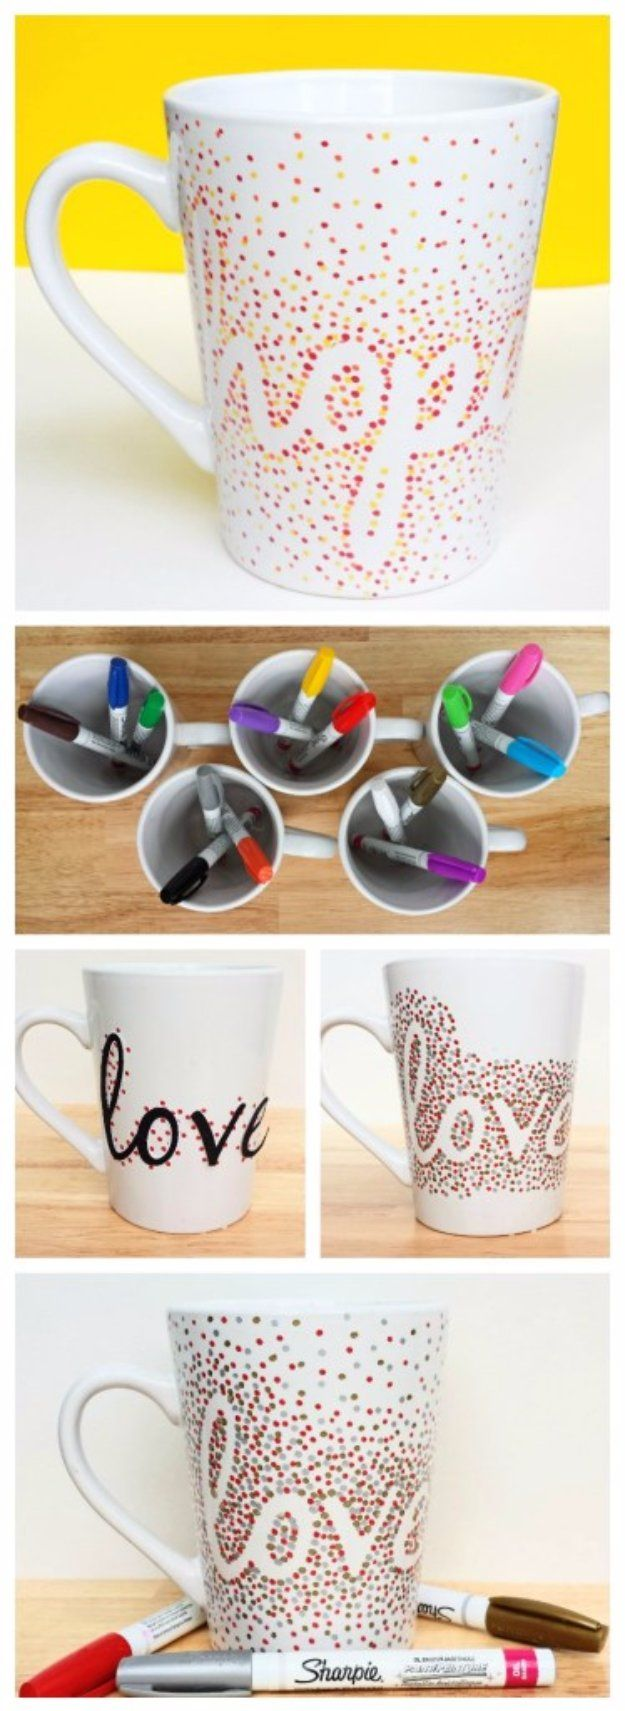 50 Easy Crafts To Make And Sell Sharpie Crafts Easy Crafts